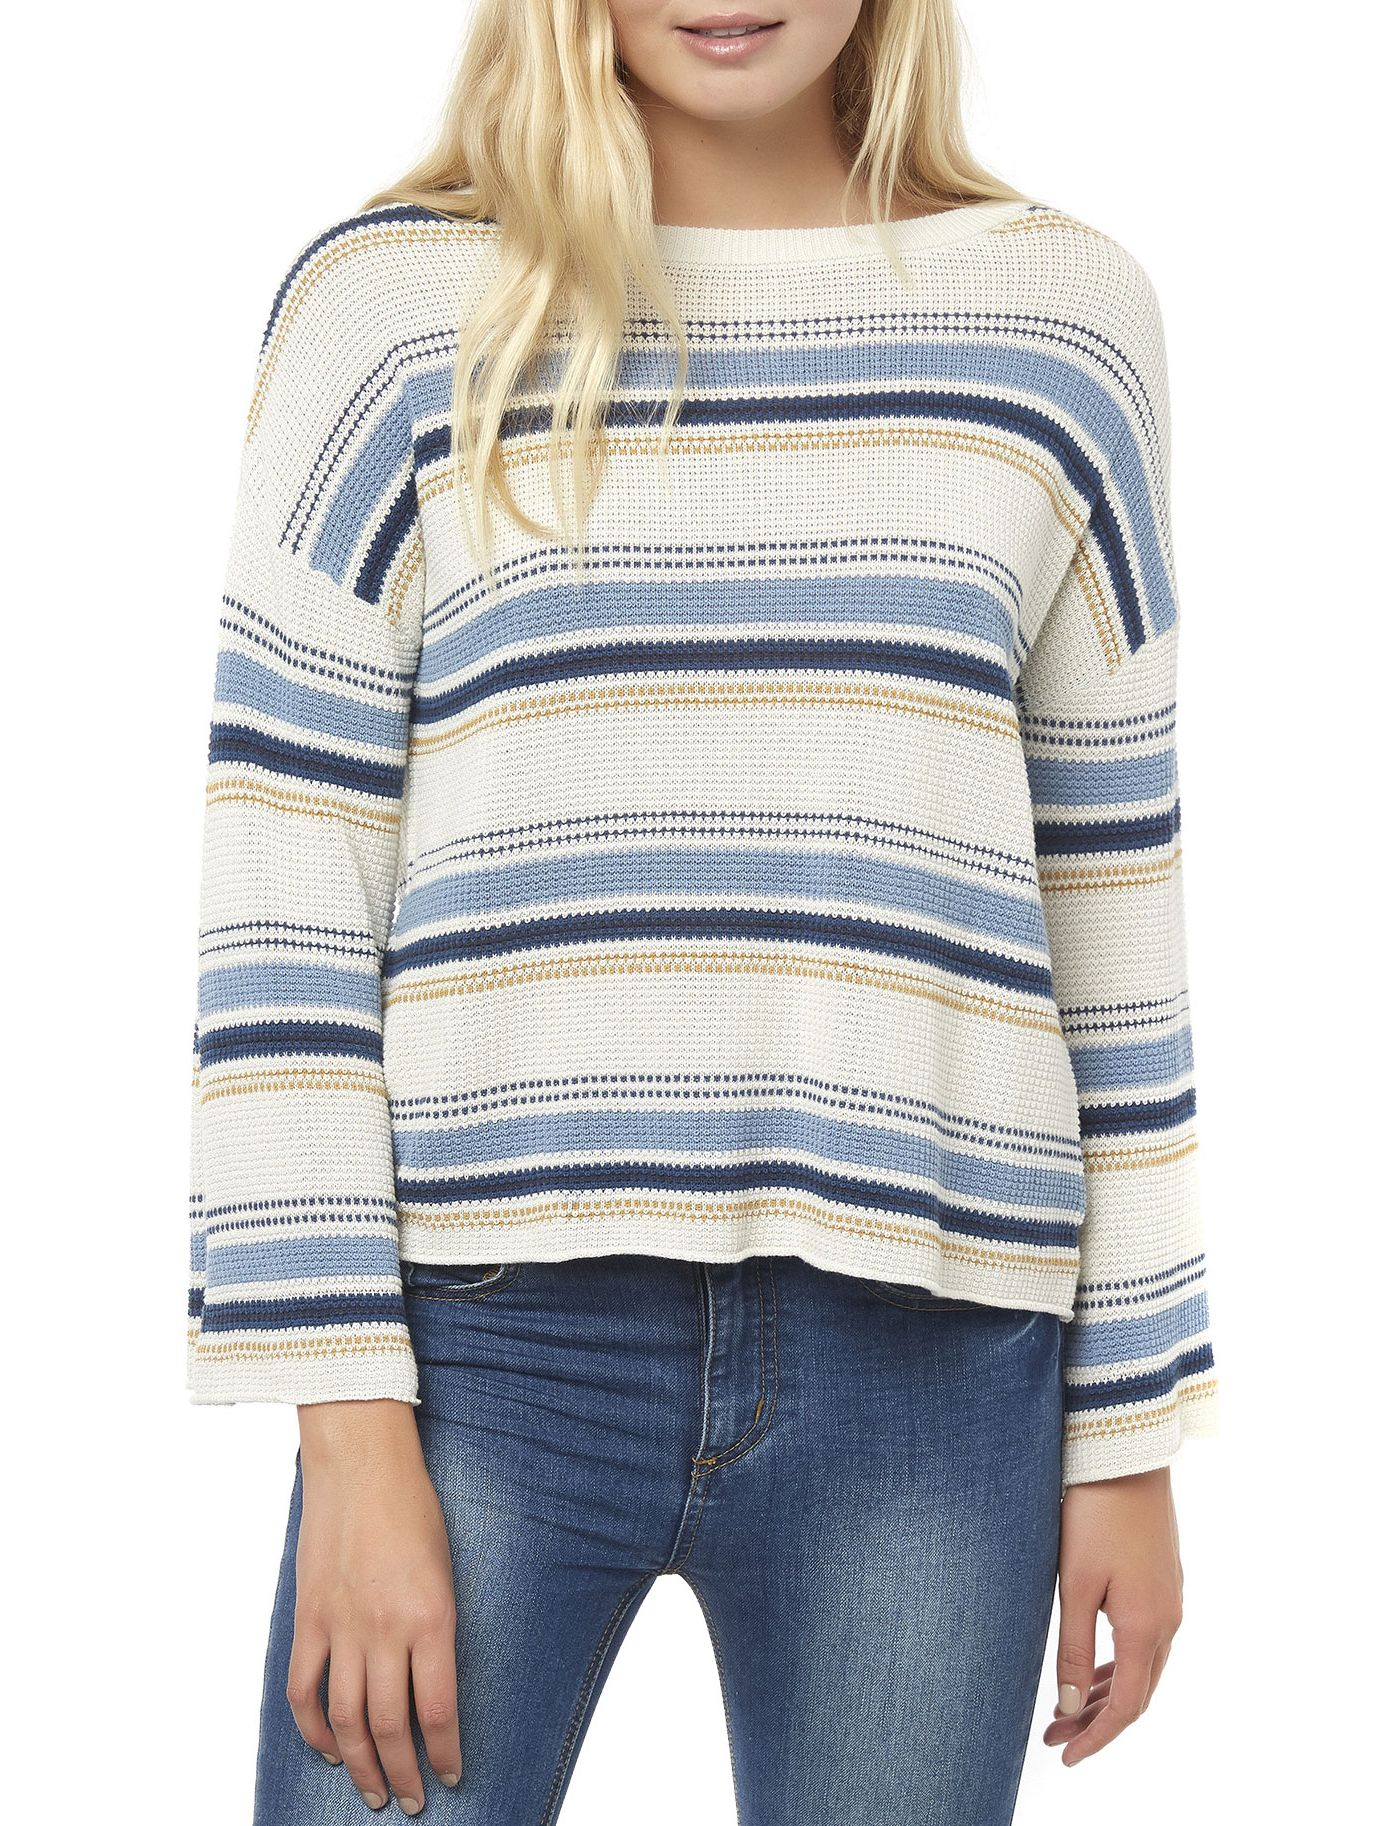 O'Neill Women's Shores Sweater